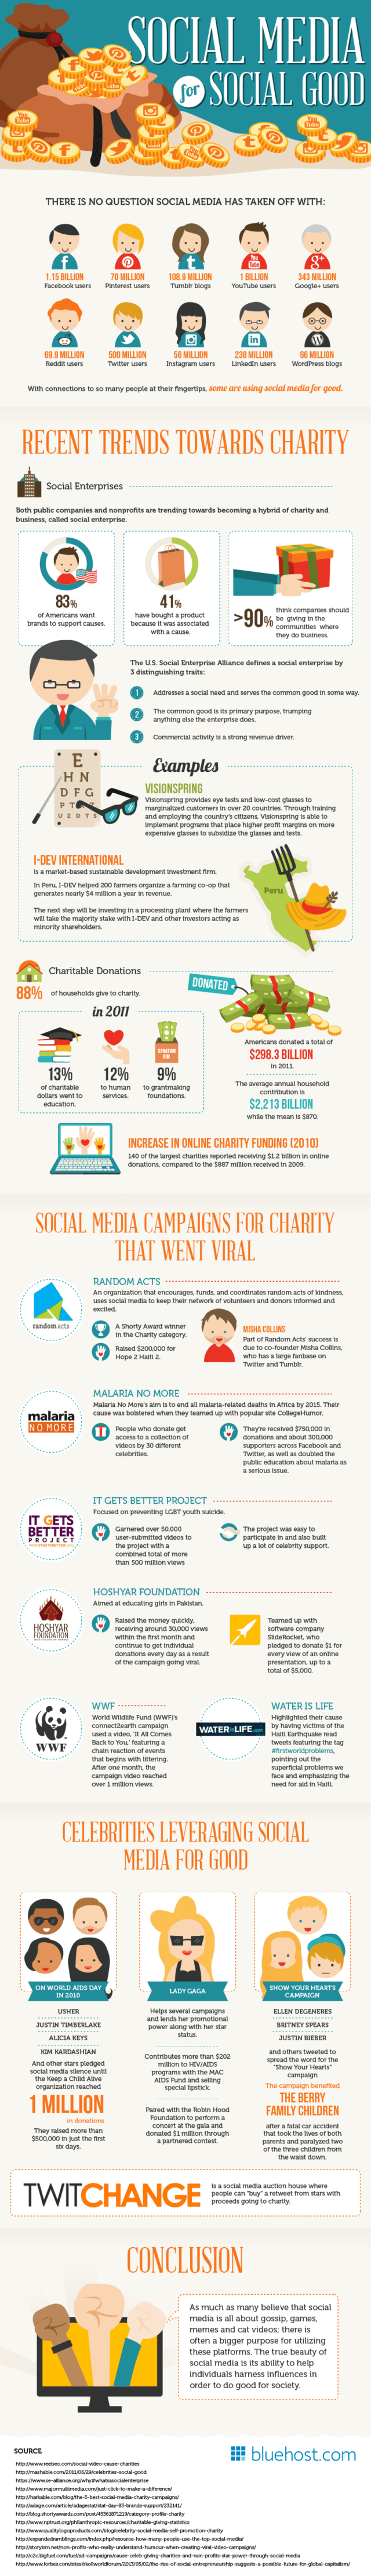 social-media-for-social-good-infographic-2